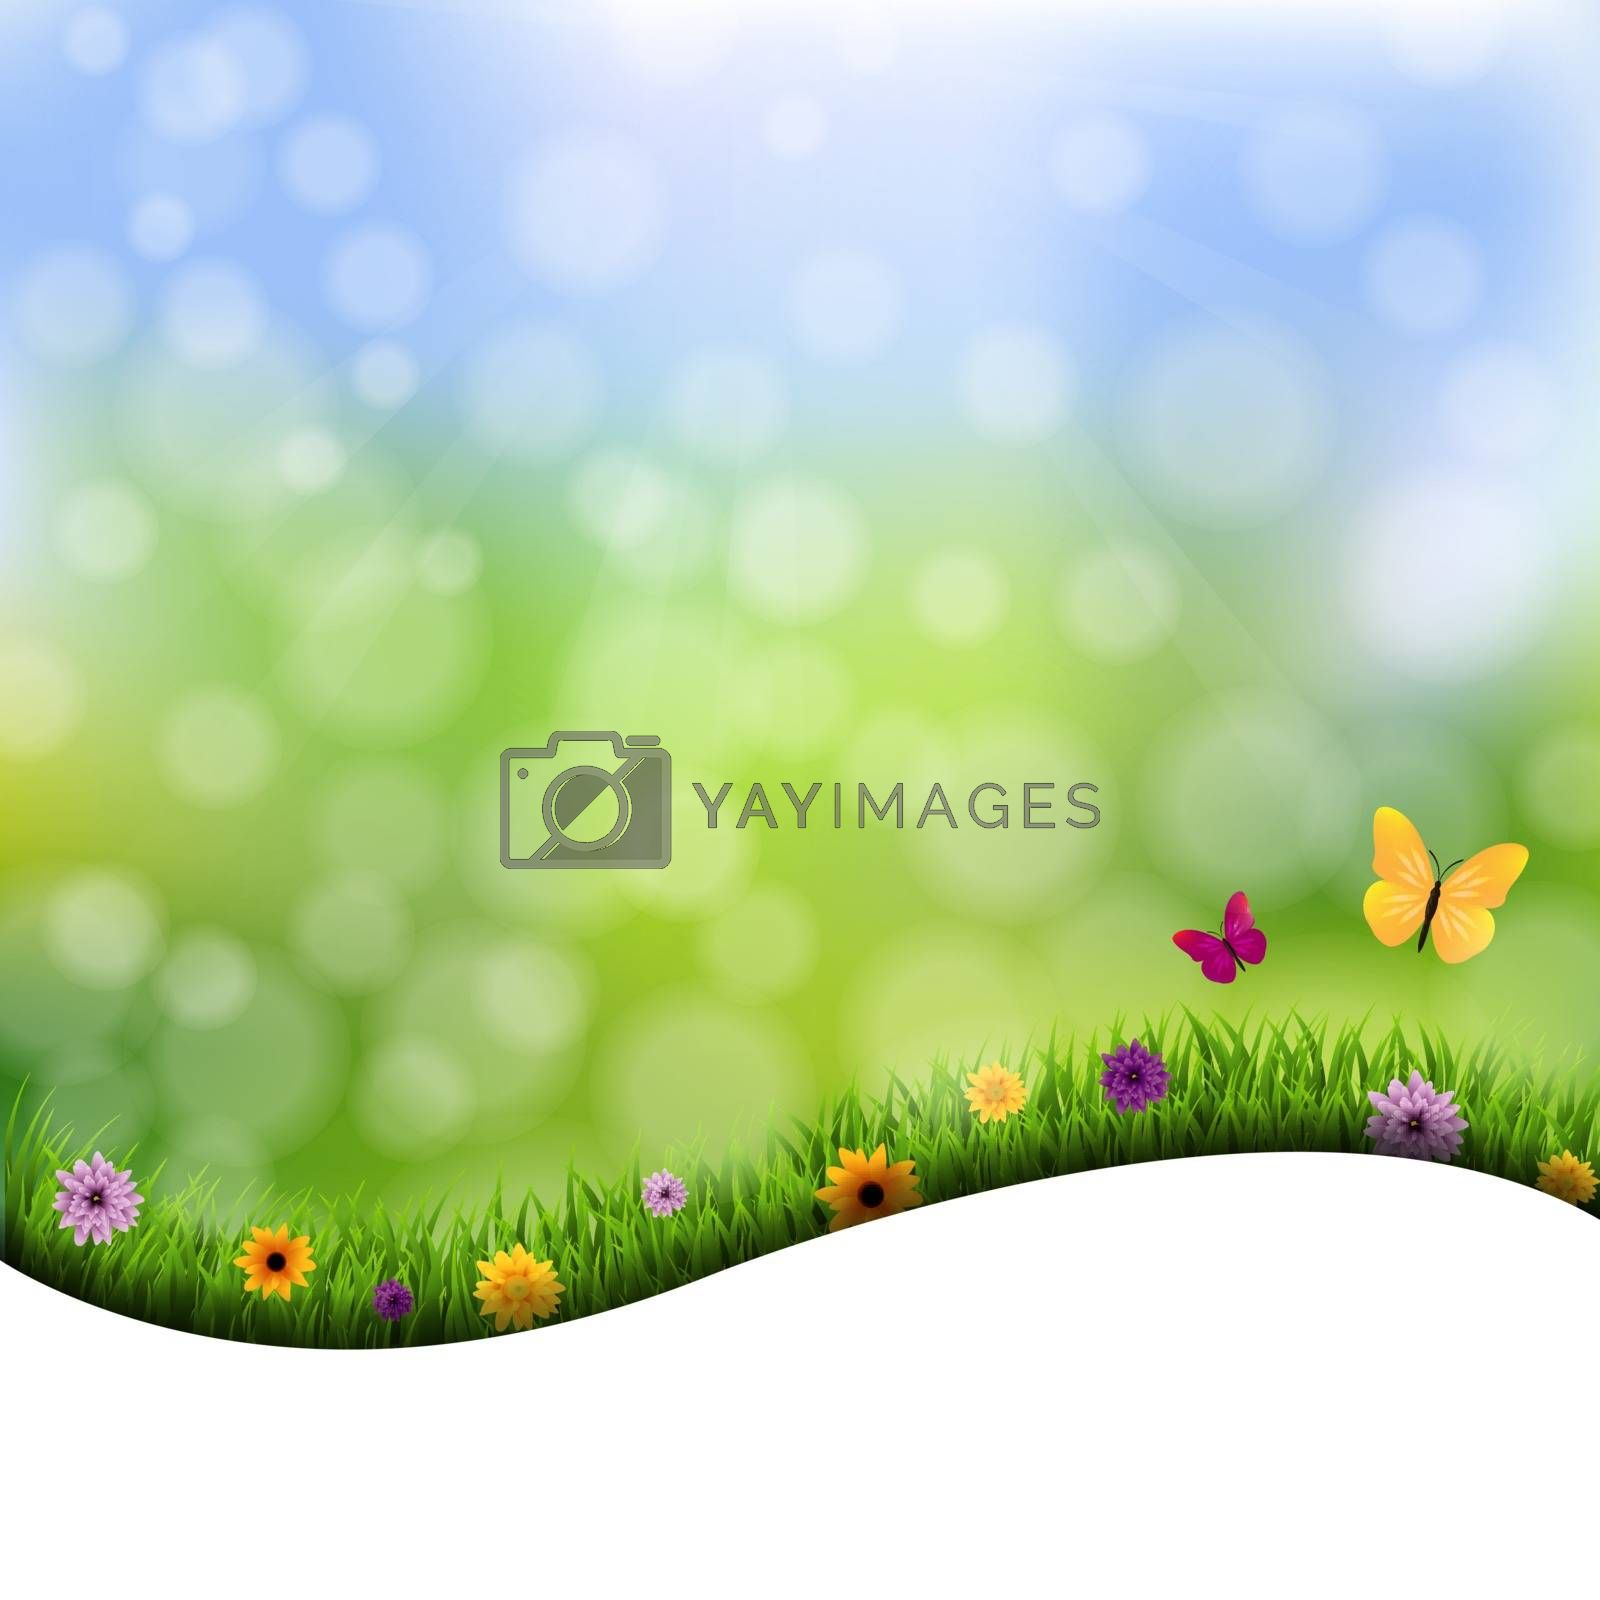 Grass And Flowers Border Nature Background by barbaliss